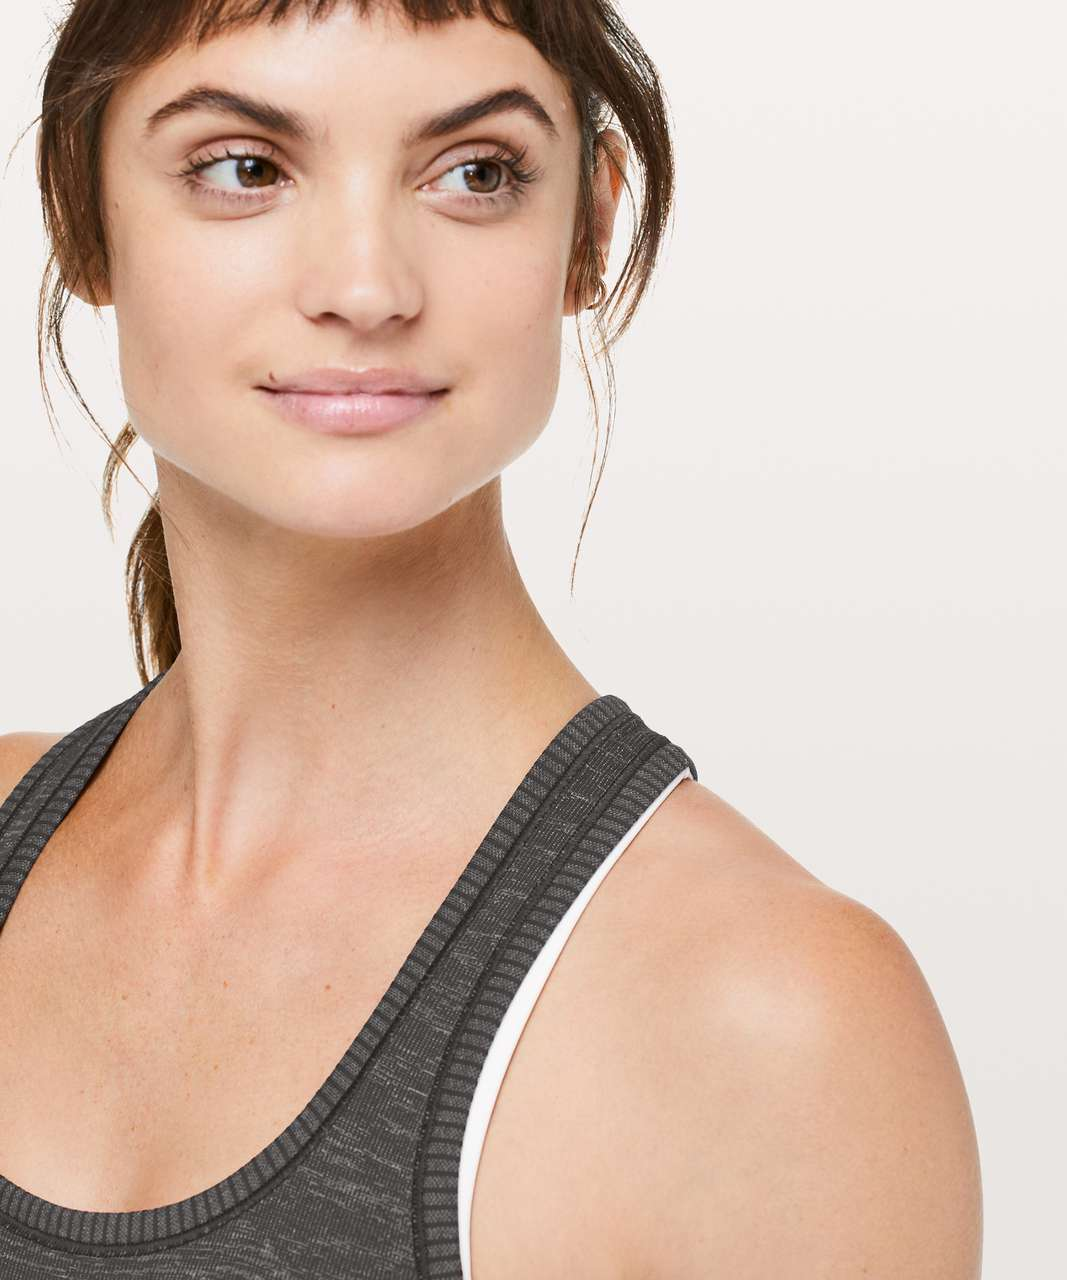 Lululemon Swiftly Tech Racerback - Black / White